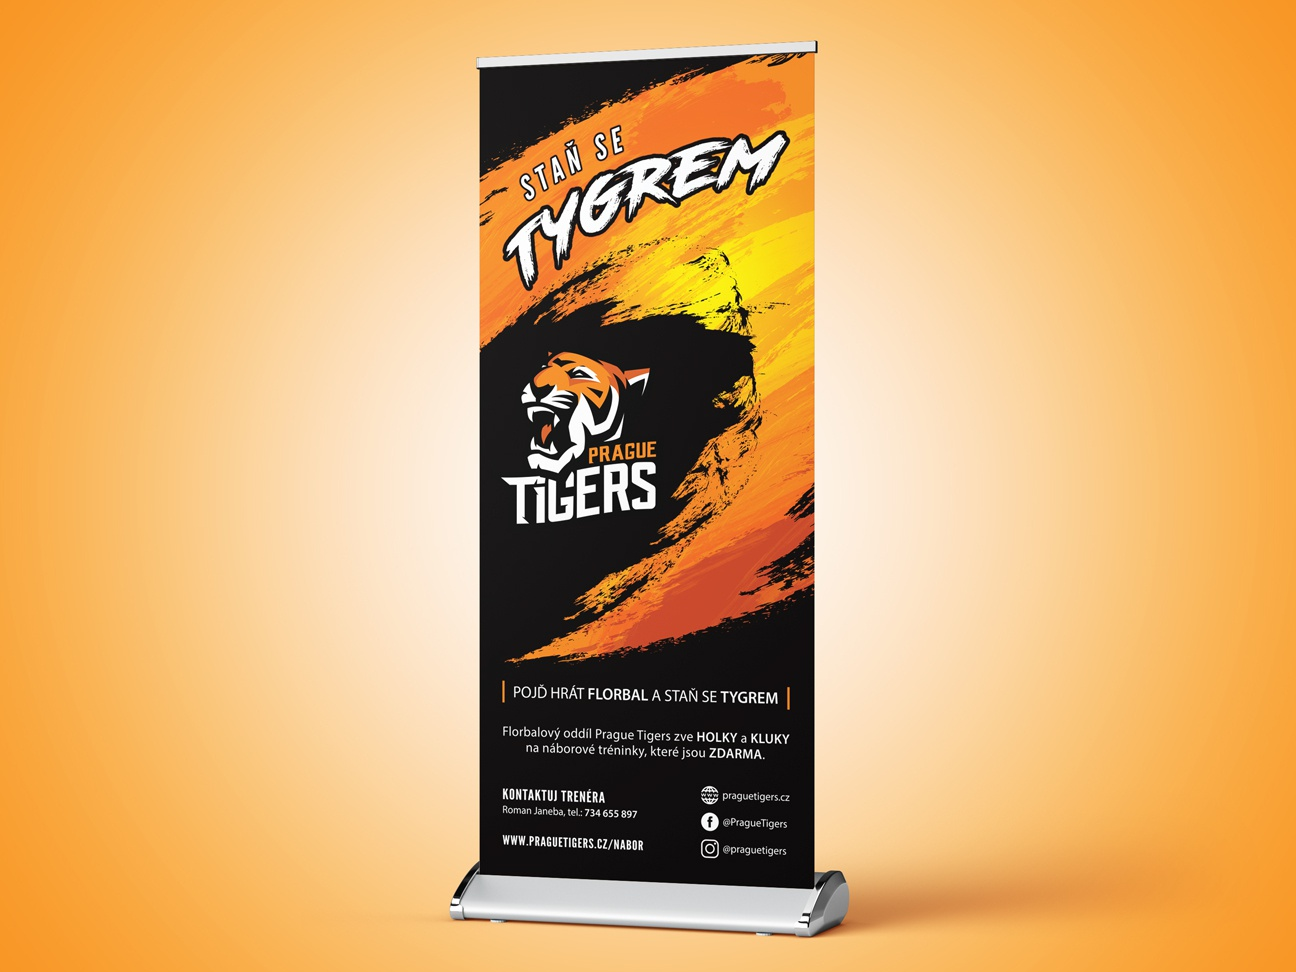 Prague Tigers roll-up floorball ads ad ad campaign orange sport design roll up banner roll sport team team prague tigers tiger branding roll-up roll up sport branding sport czech design